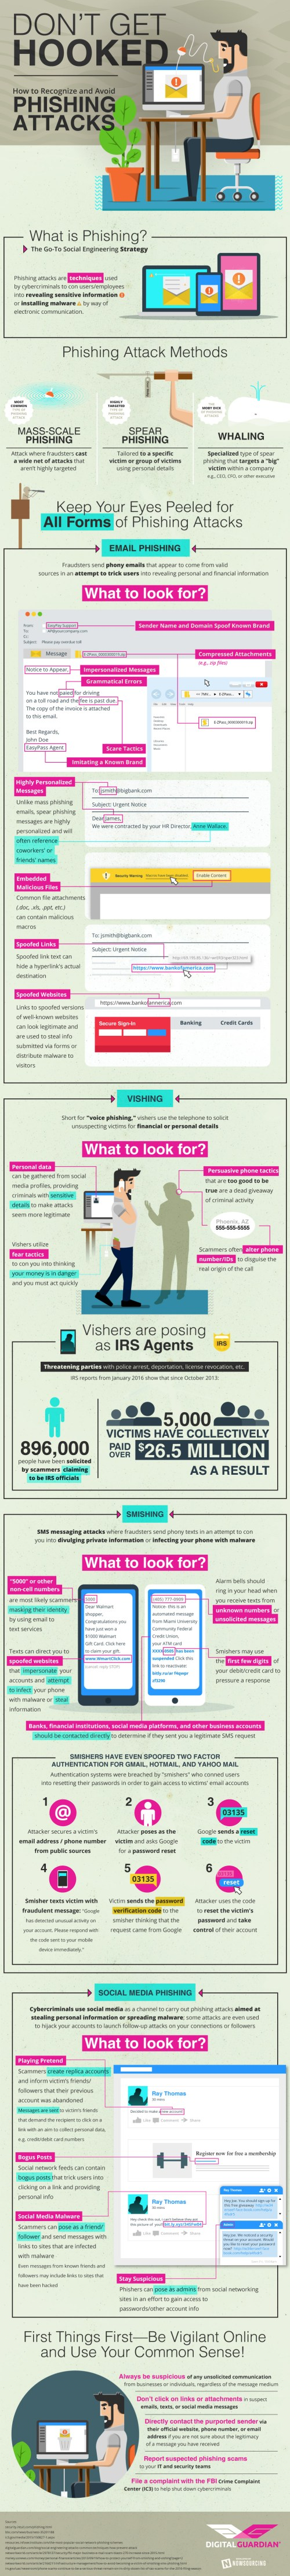 How to Recognize and Avoid Phishing Attacks Infographic